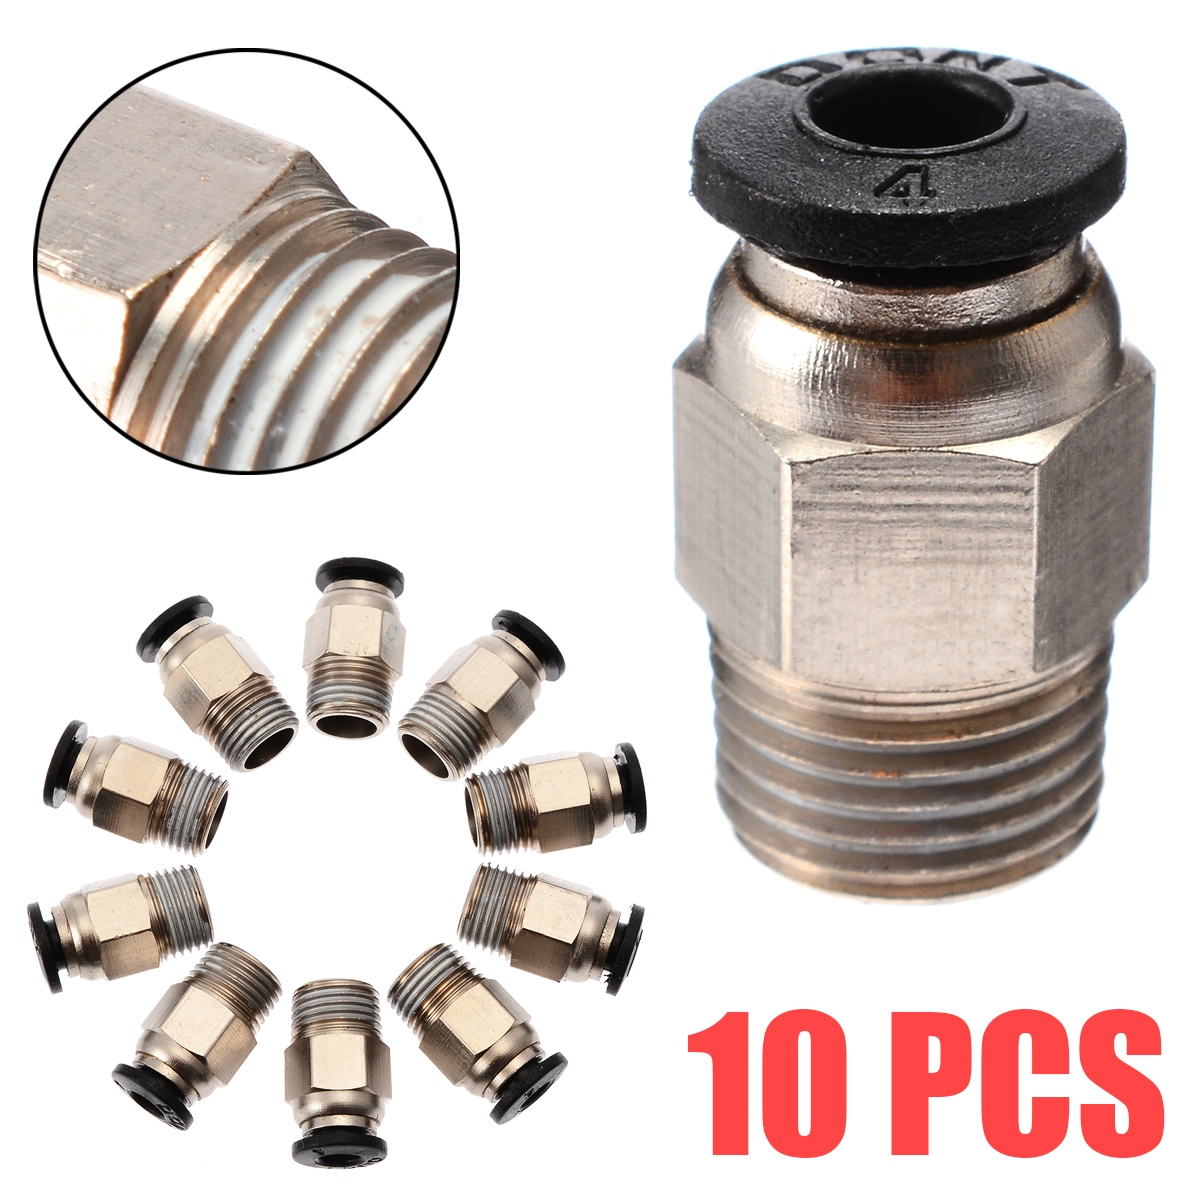 5pcs/10pcs Push In Quick Release Fitting Connector J-Head Hotend For V6 PC4-M10 3D Printer Straight Tube Pipe Connection